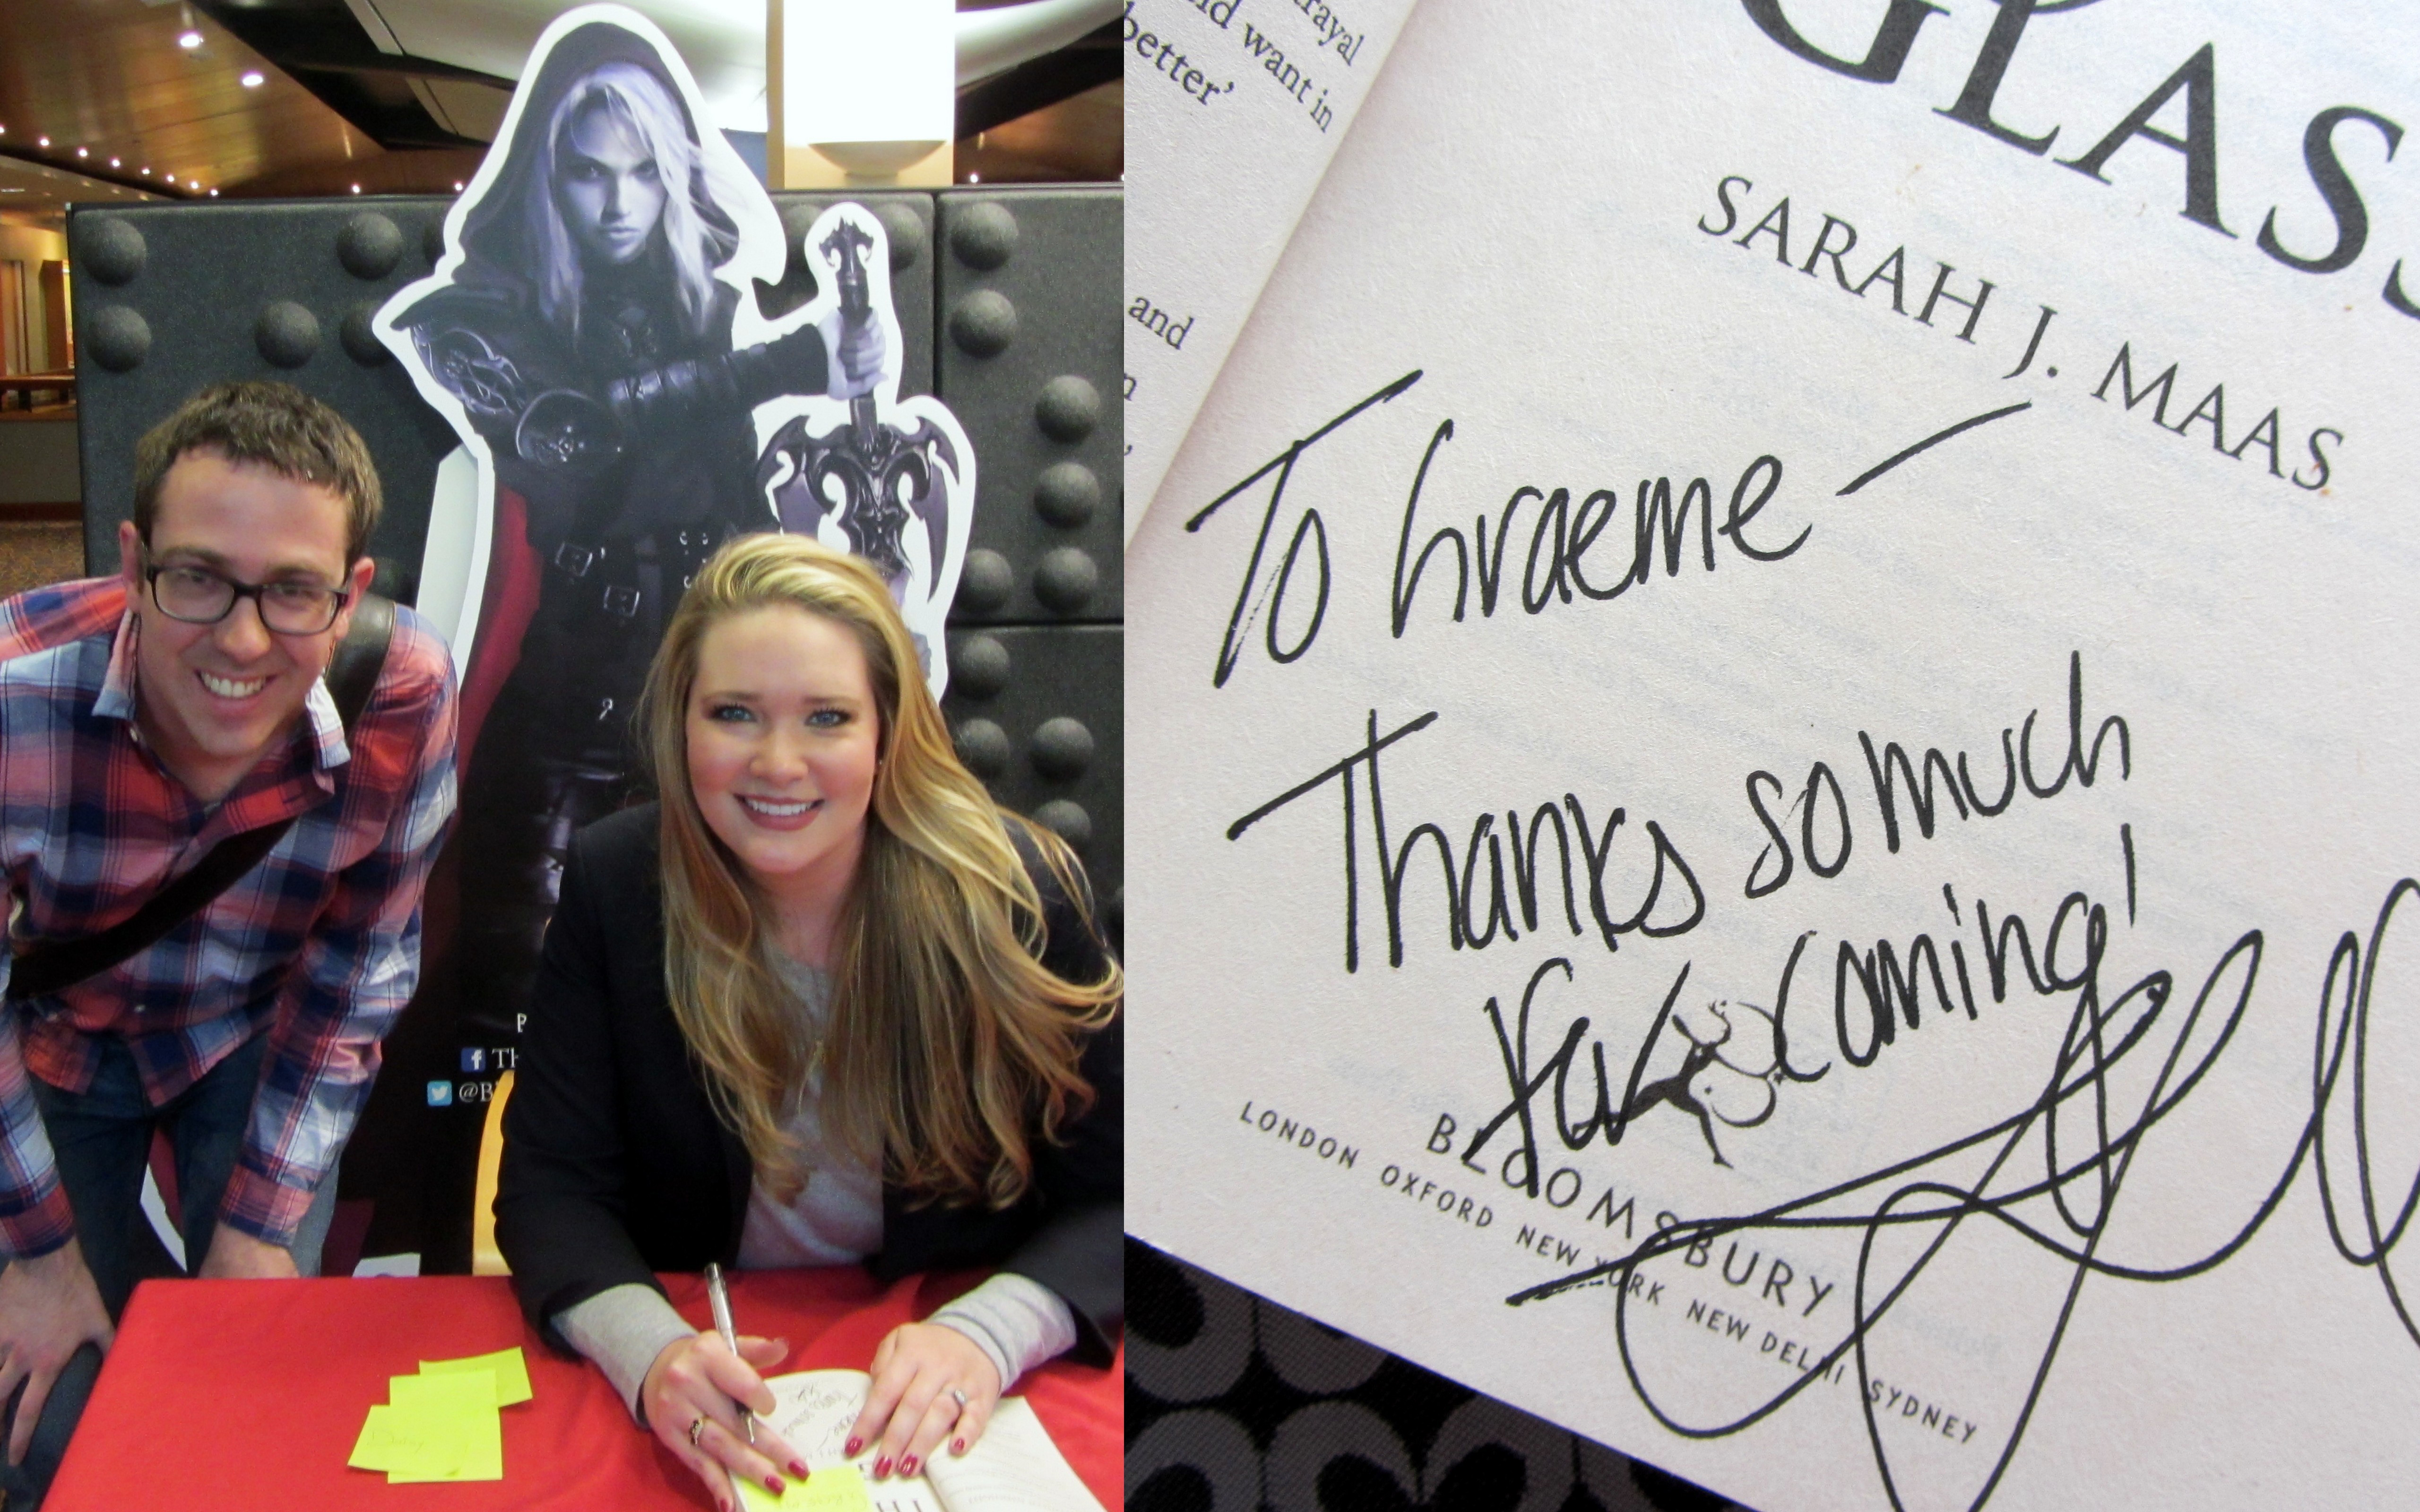 Advice to young writers, by Sarah J Maas